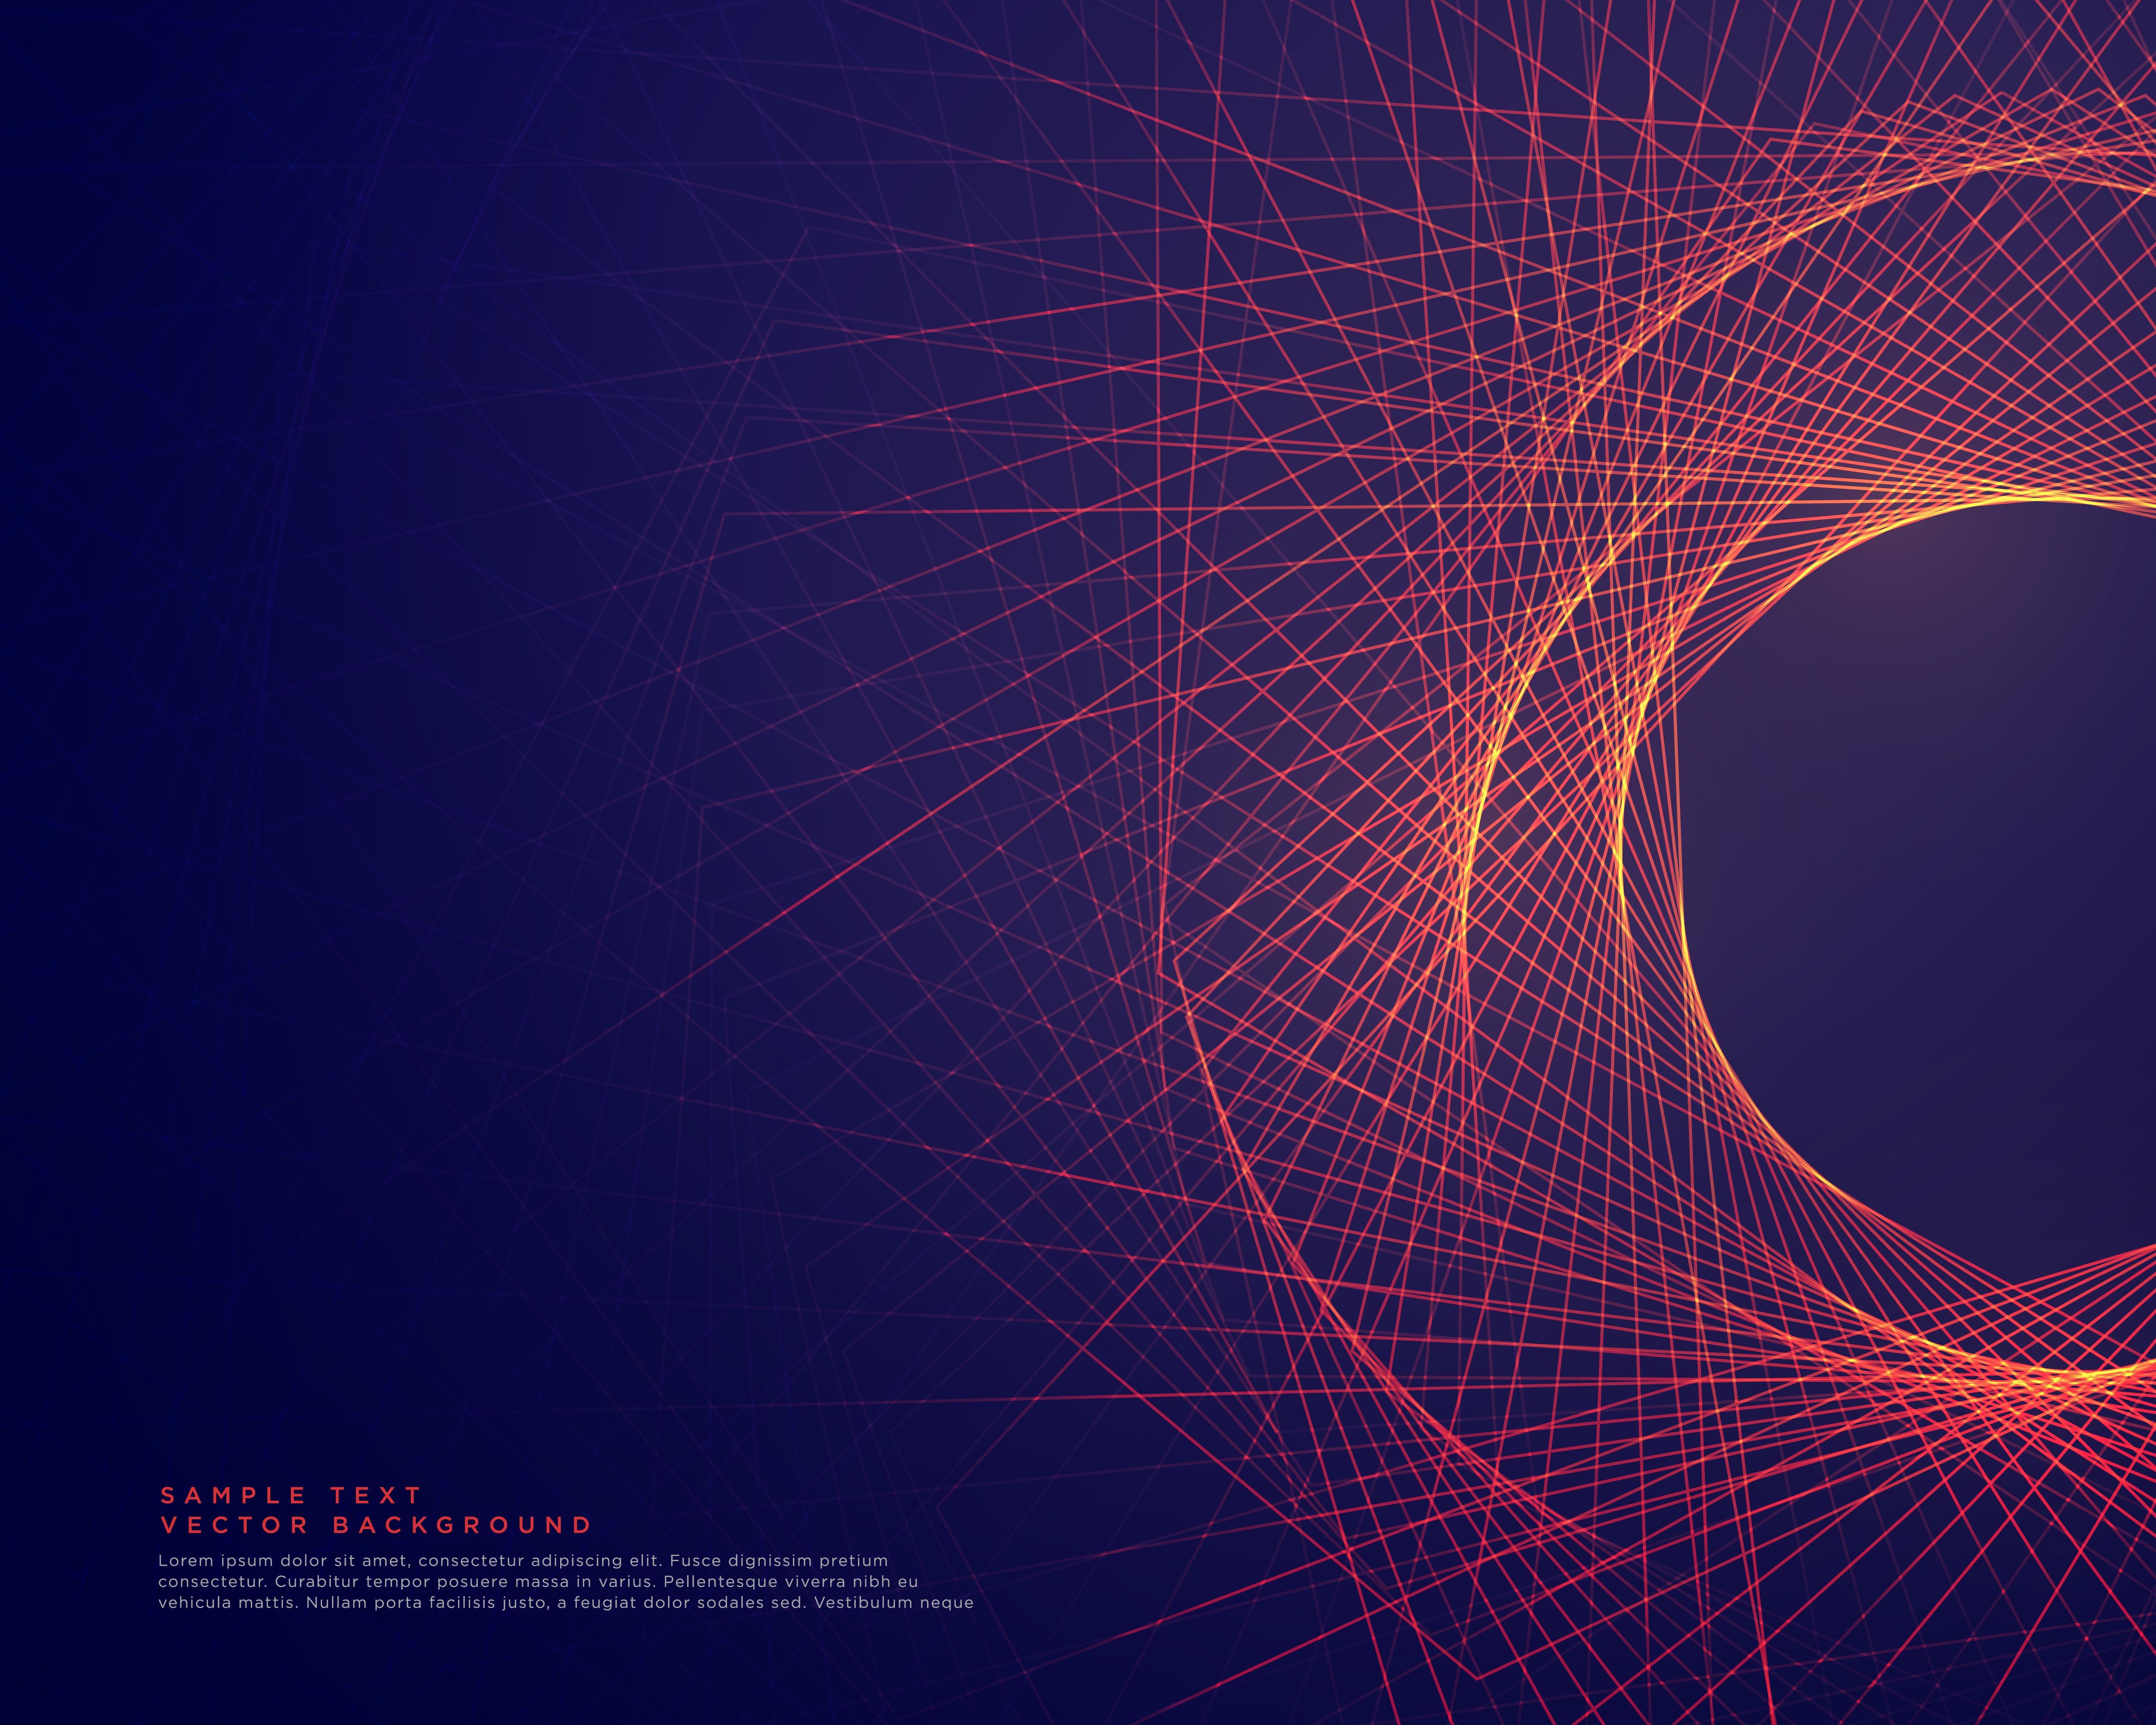 Vector Drawing Lines Examples : Abstract lines forming tunner shape background download